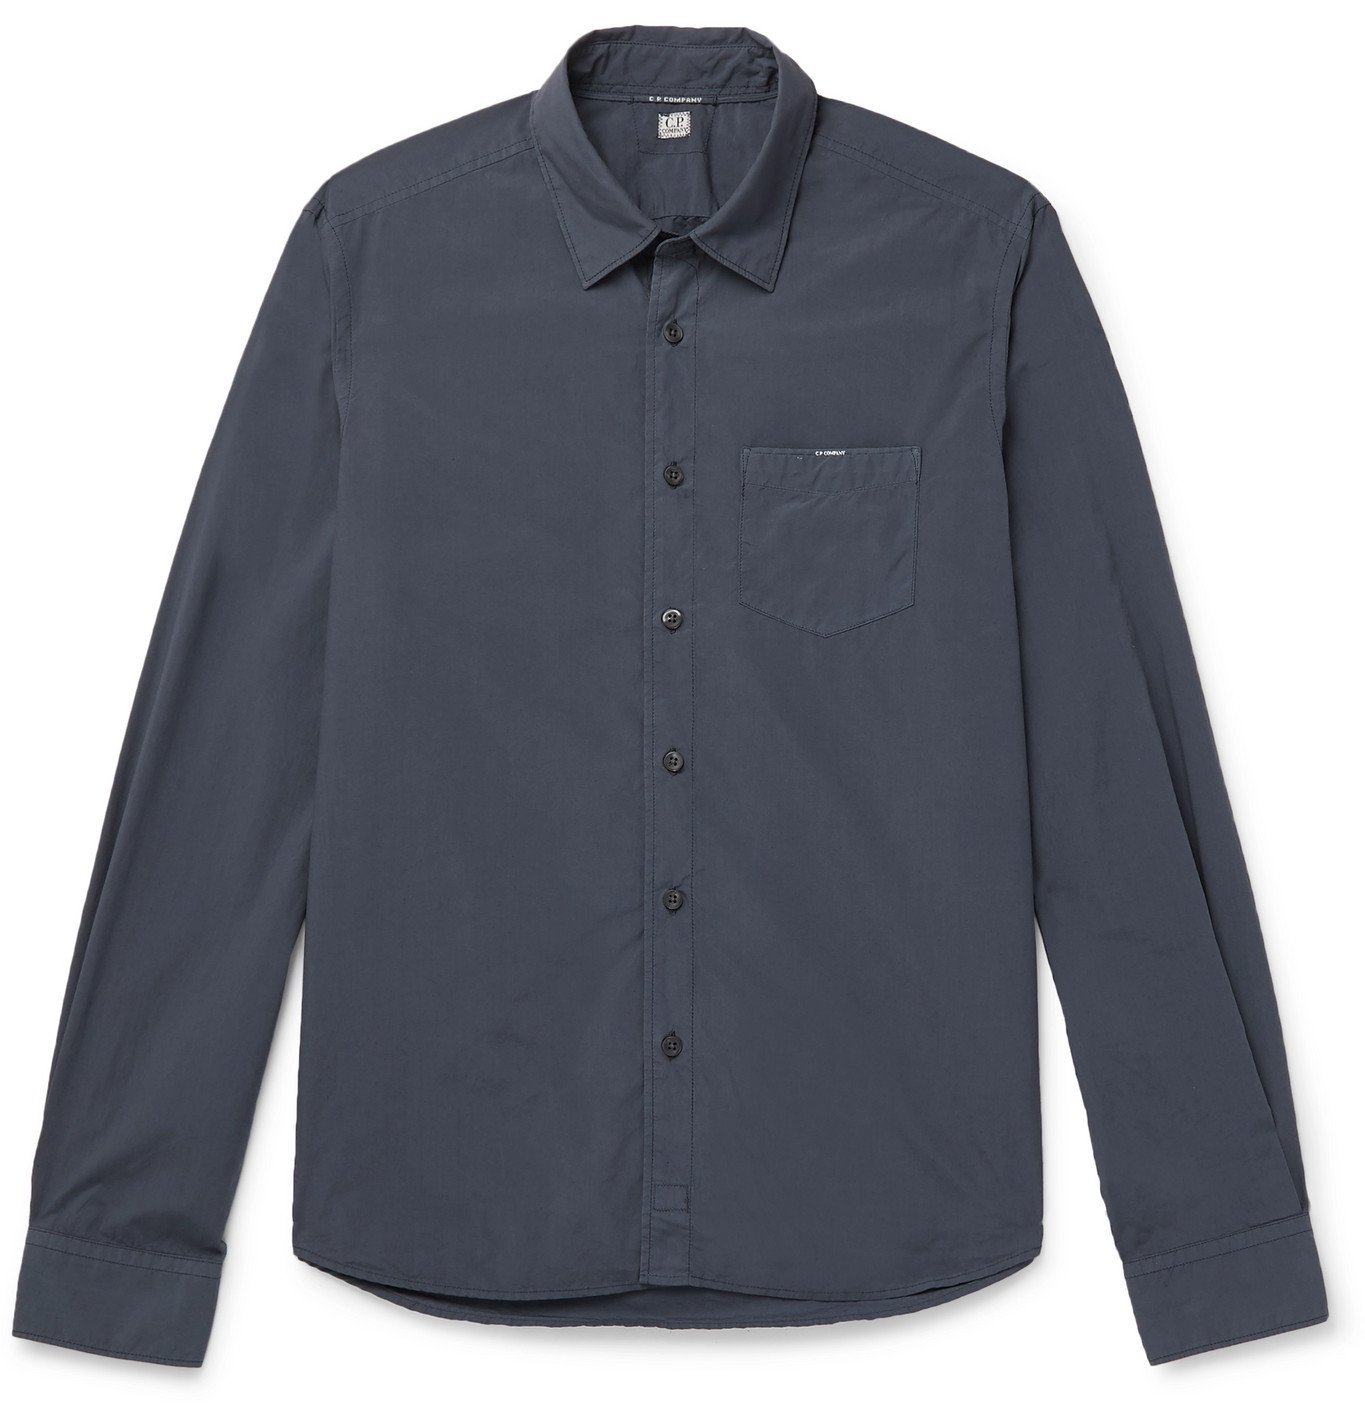 C.P. Company - Cotton Shirt - Blue